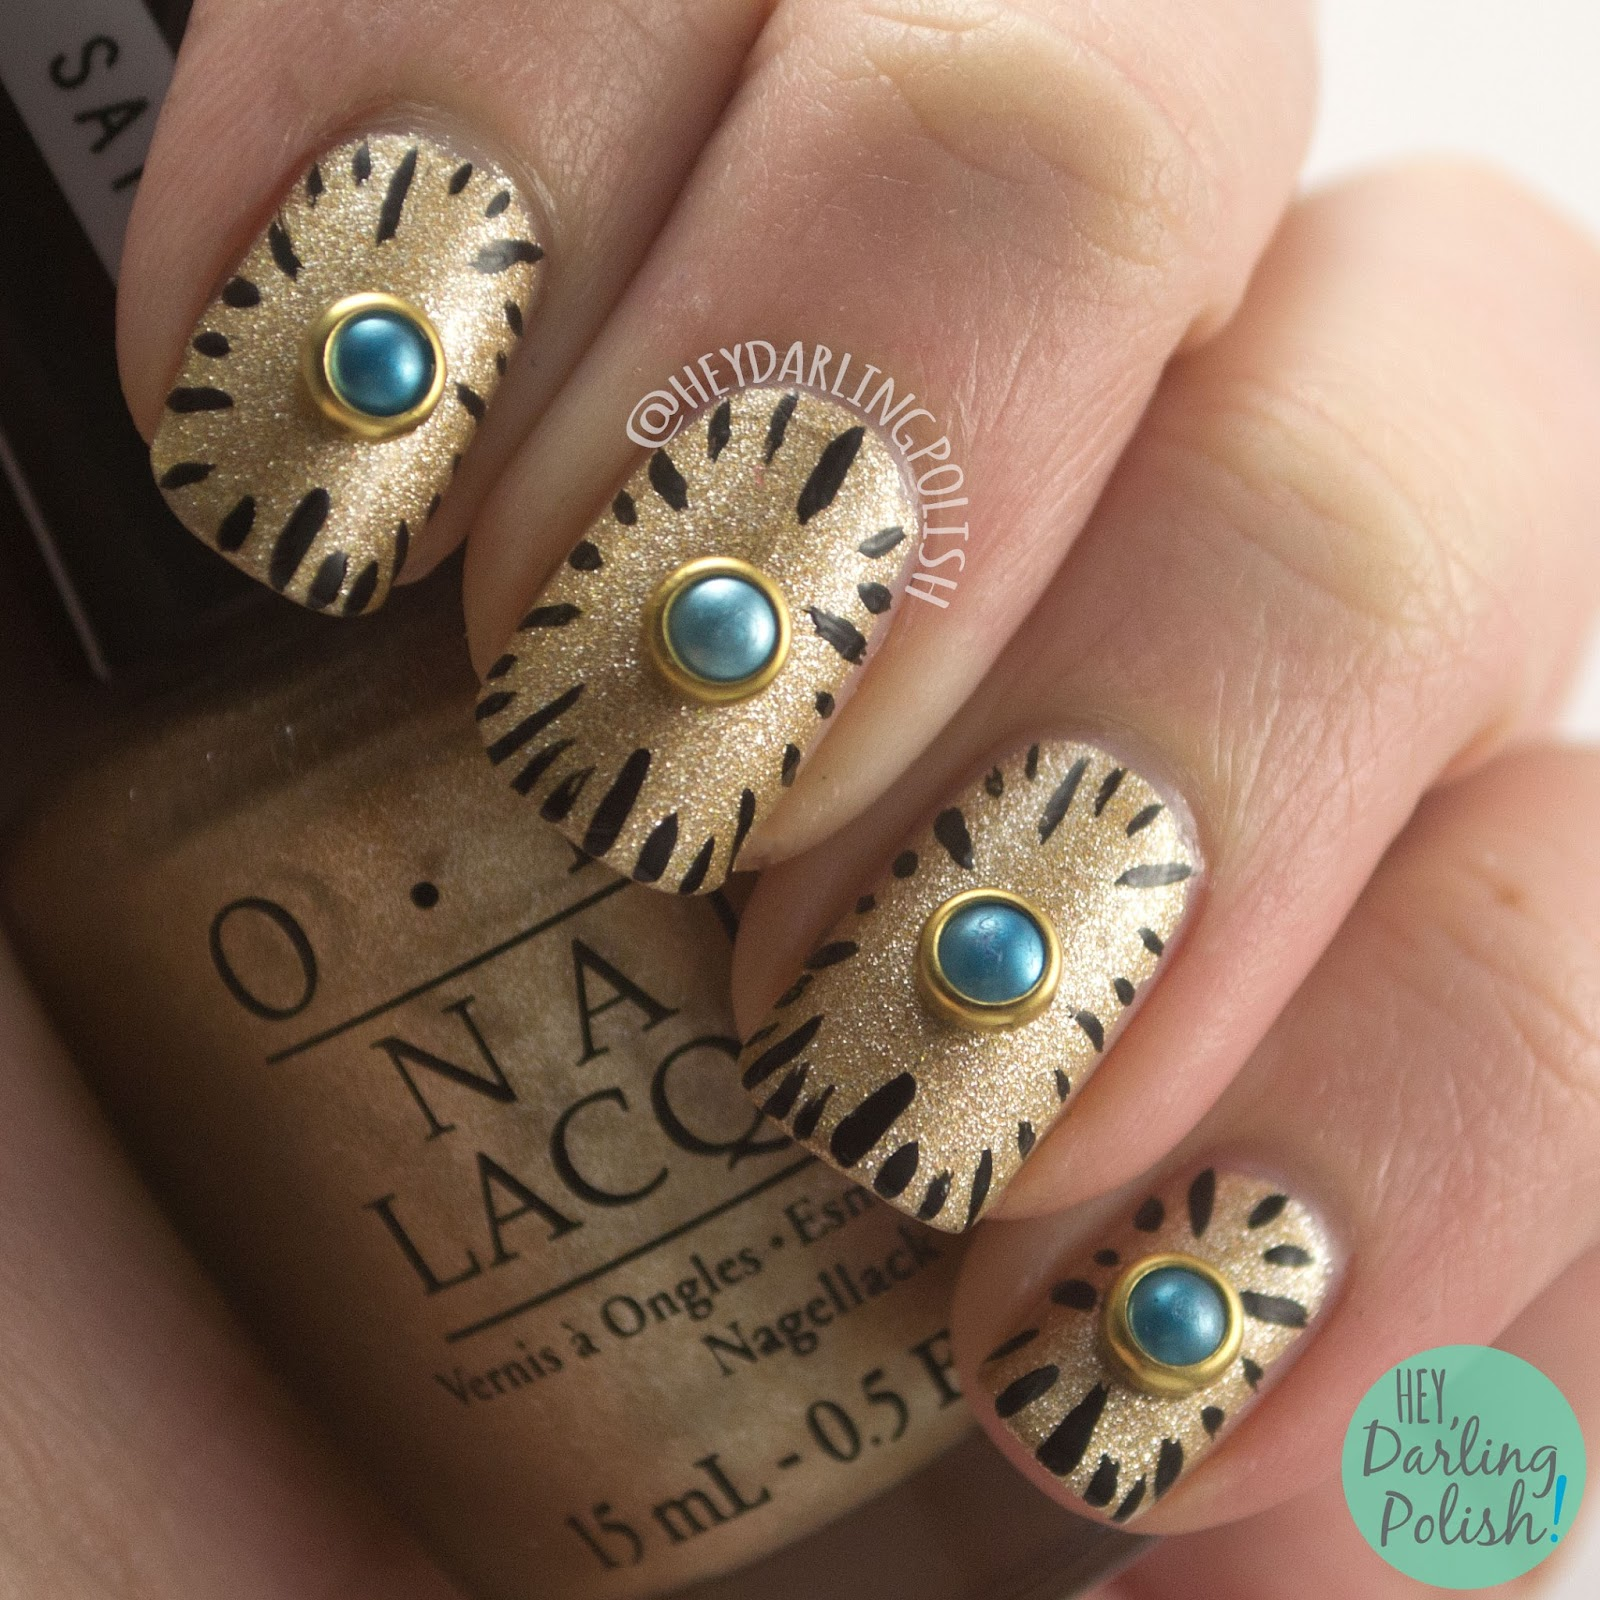 nails, nail art, nail polish, gold, clock, pearl, hey darling polish, nail linkup,